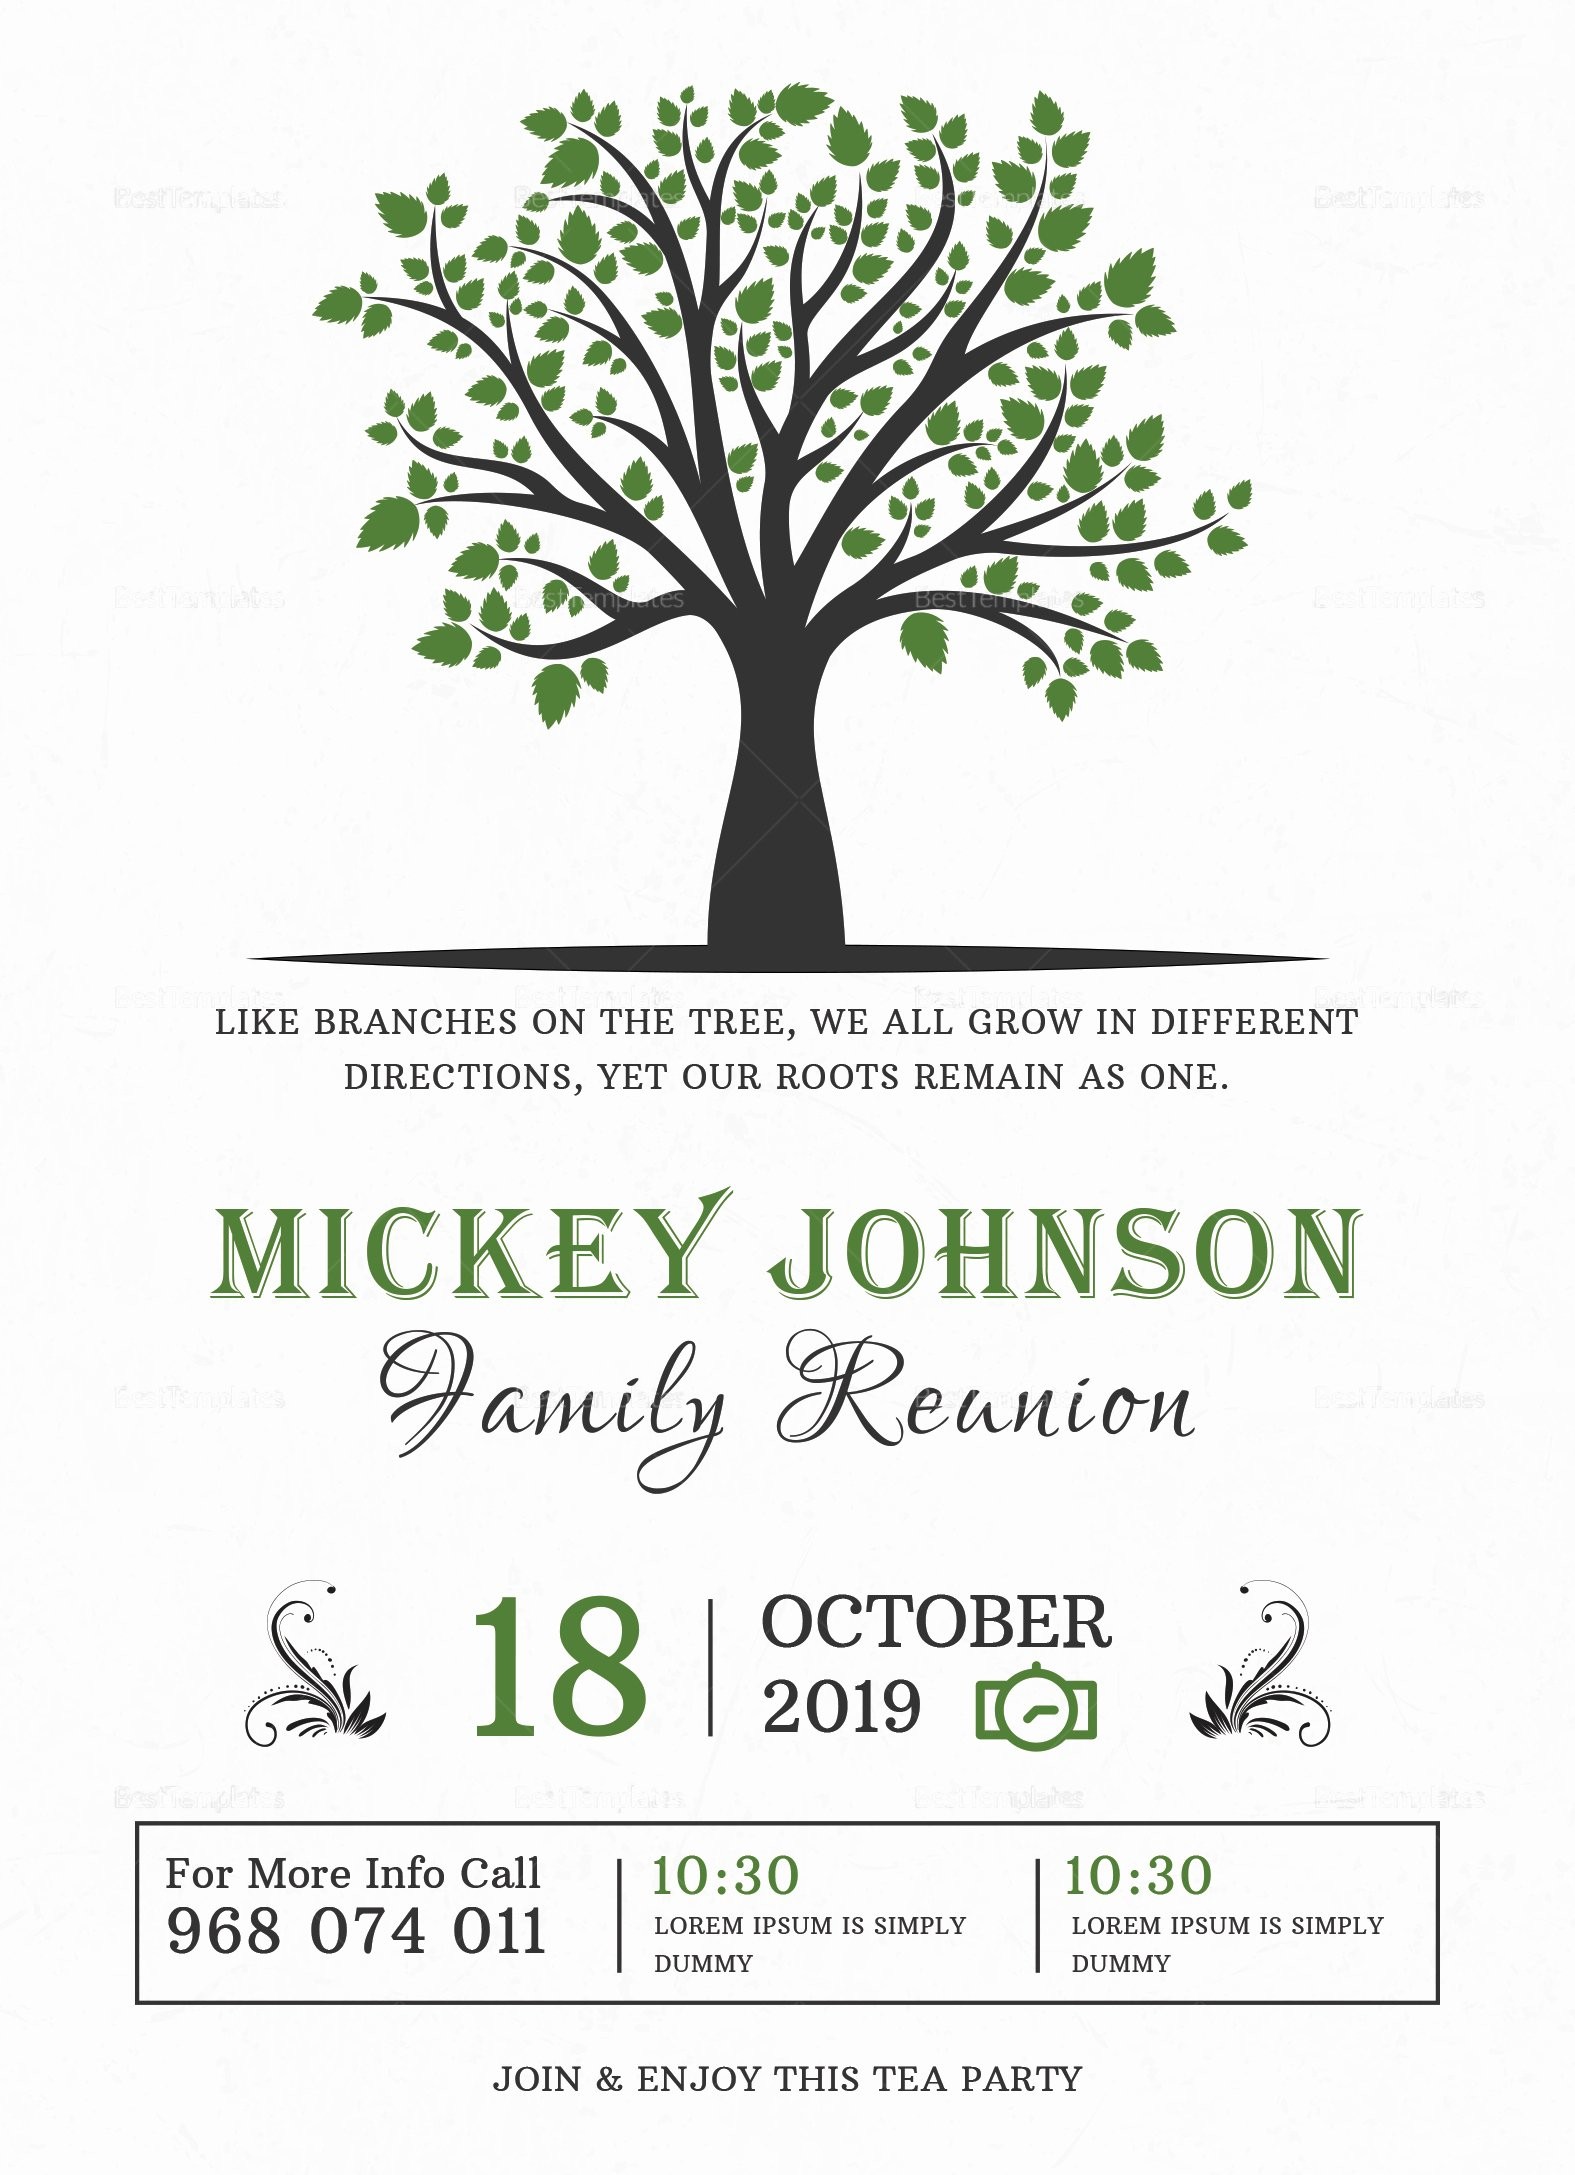 Family Reunion Flyer Template Best Of Classic Family Reunion Invitation Design Template In Word